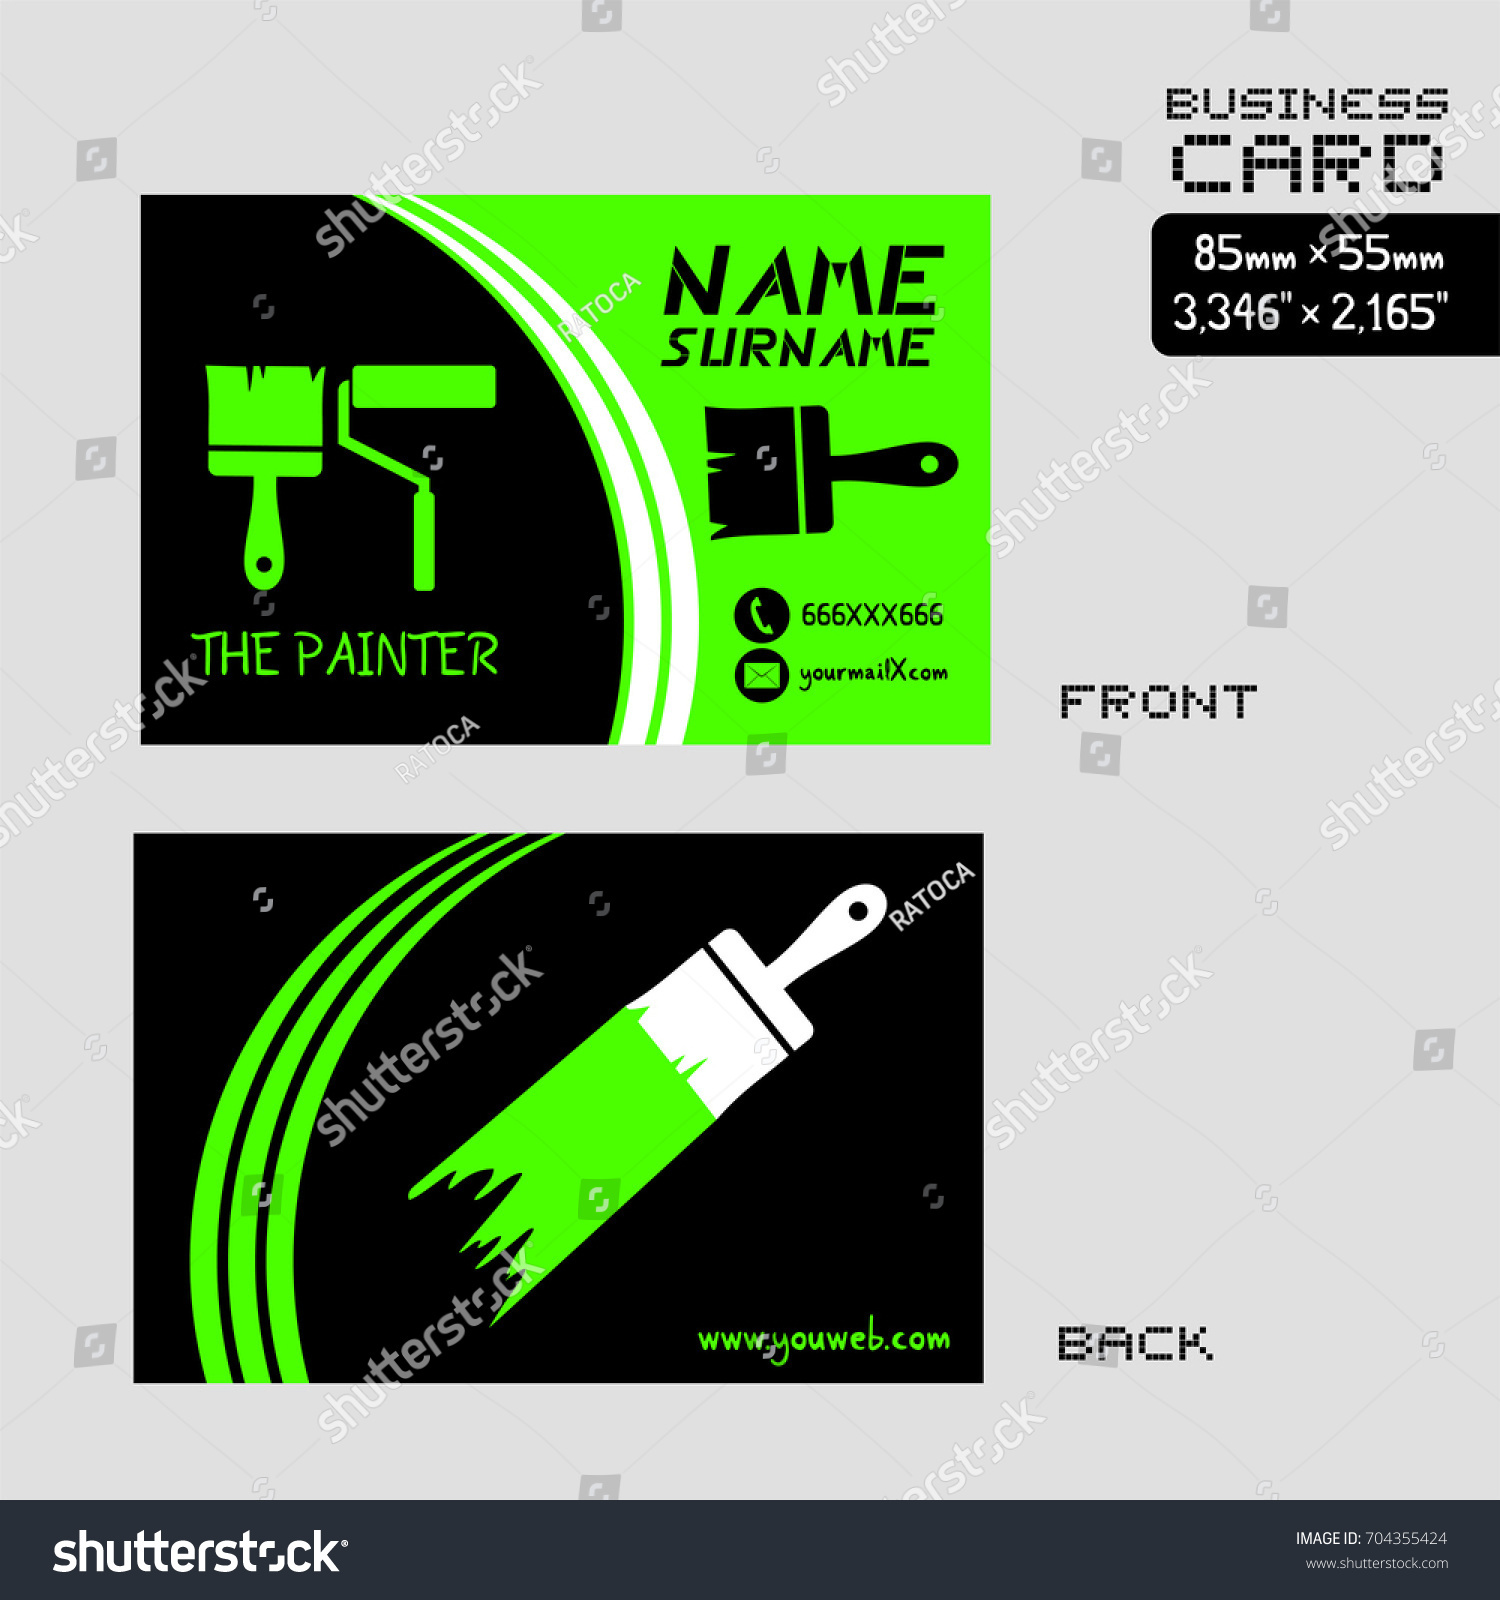 business card painter worker stock vector shutterstock